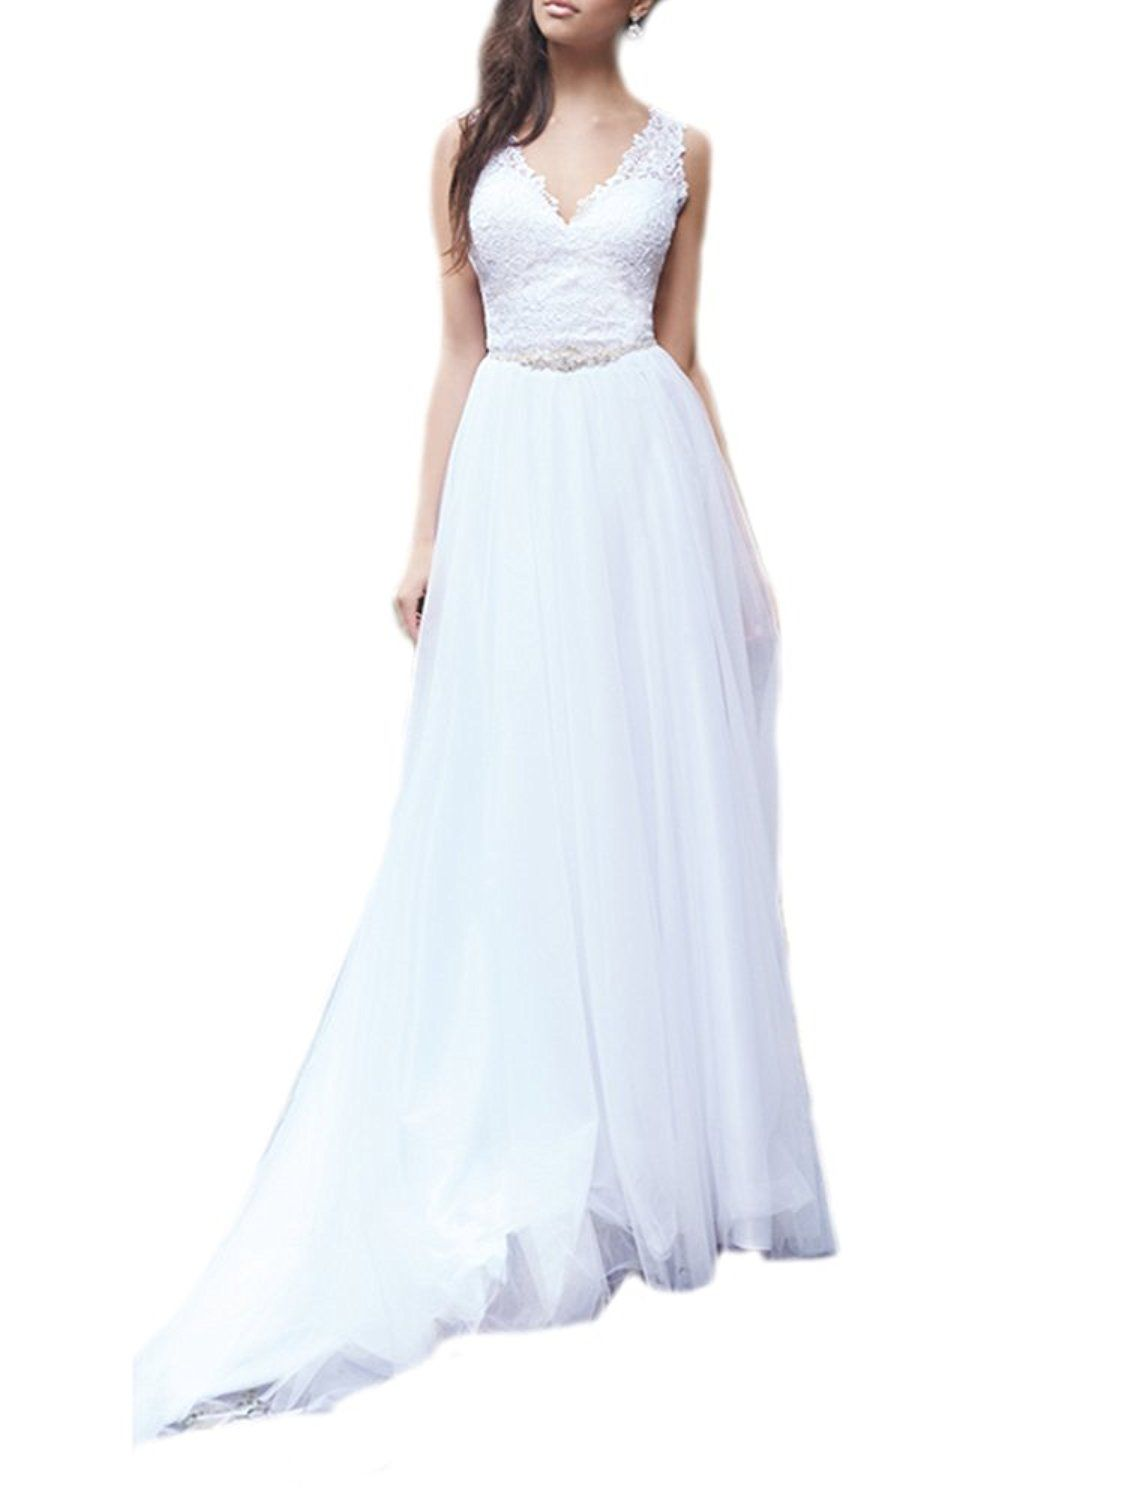 Retro wedding dress  DreHouse Womenus Lace Chiffon Vintage Wedding Dresses Beach Summer